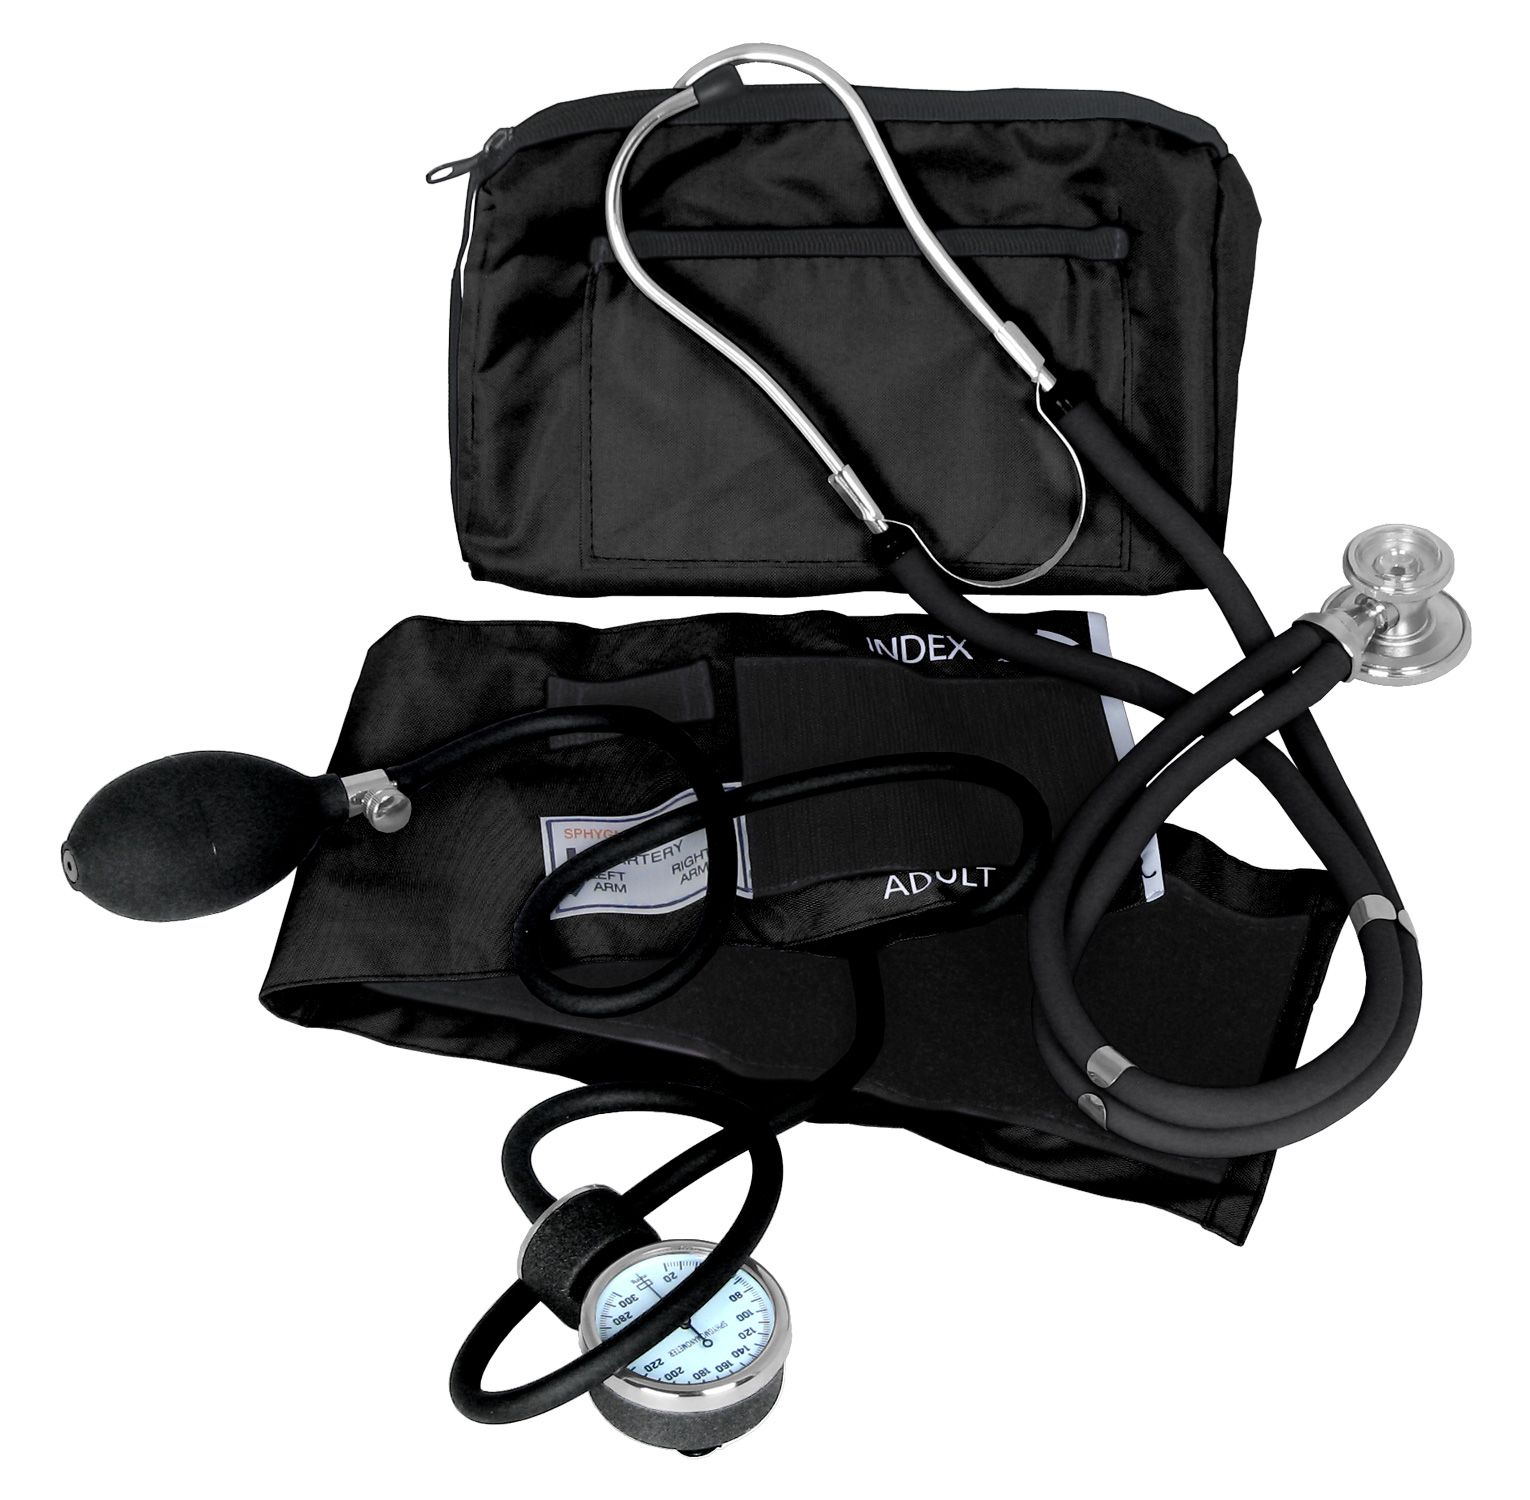 Dixie Ems Blood Pressure and Sprague Stethoscope Kit (BLACK)